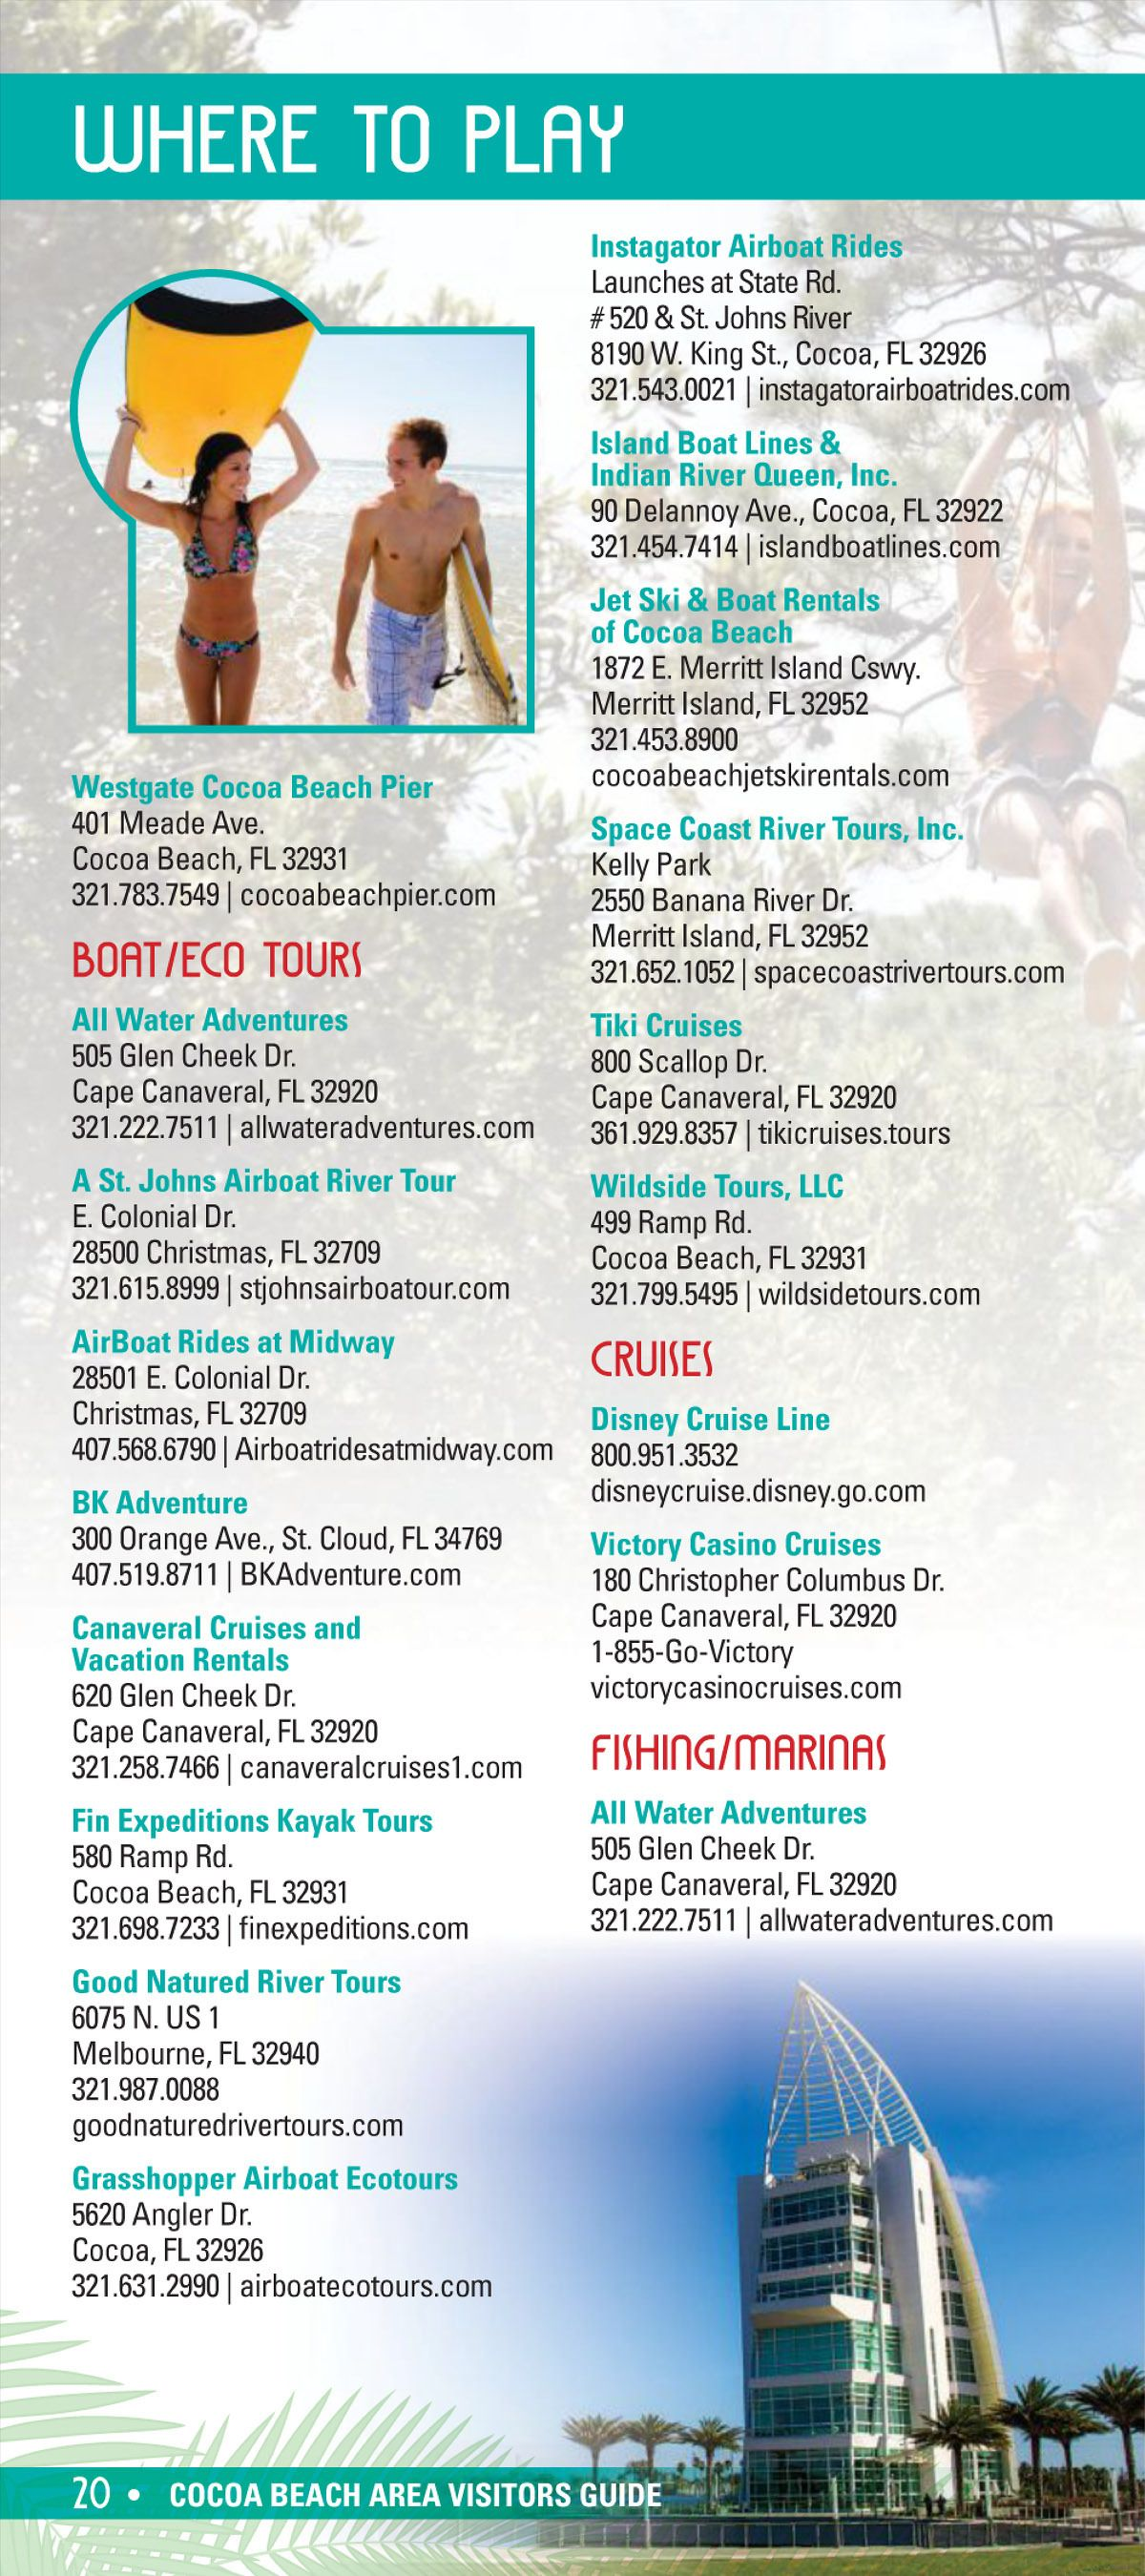 Cocoa Beach Chamber Of Commerce 2019 Cocoa Beach Visitors Guide Airboat Rides Boat Rental Cocoa Beach